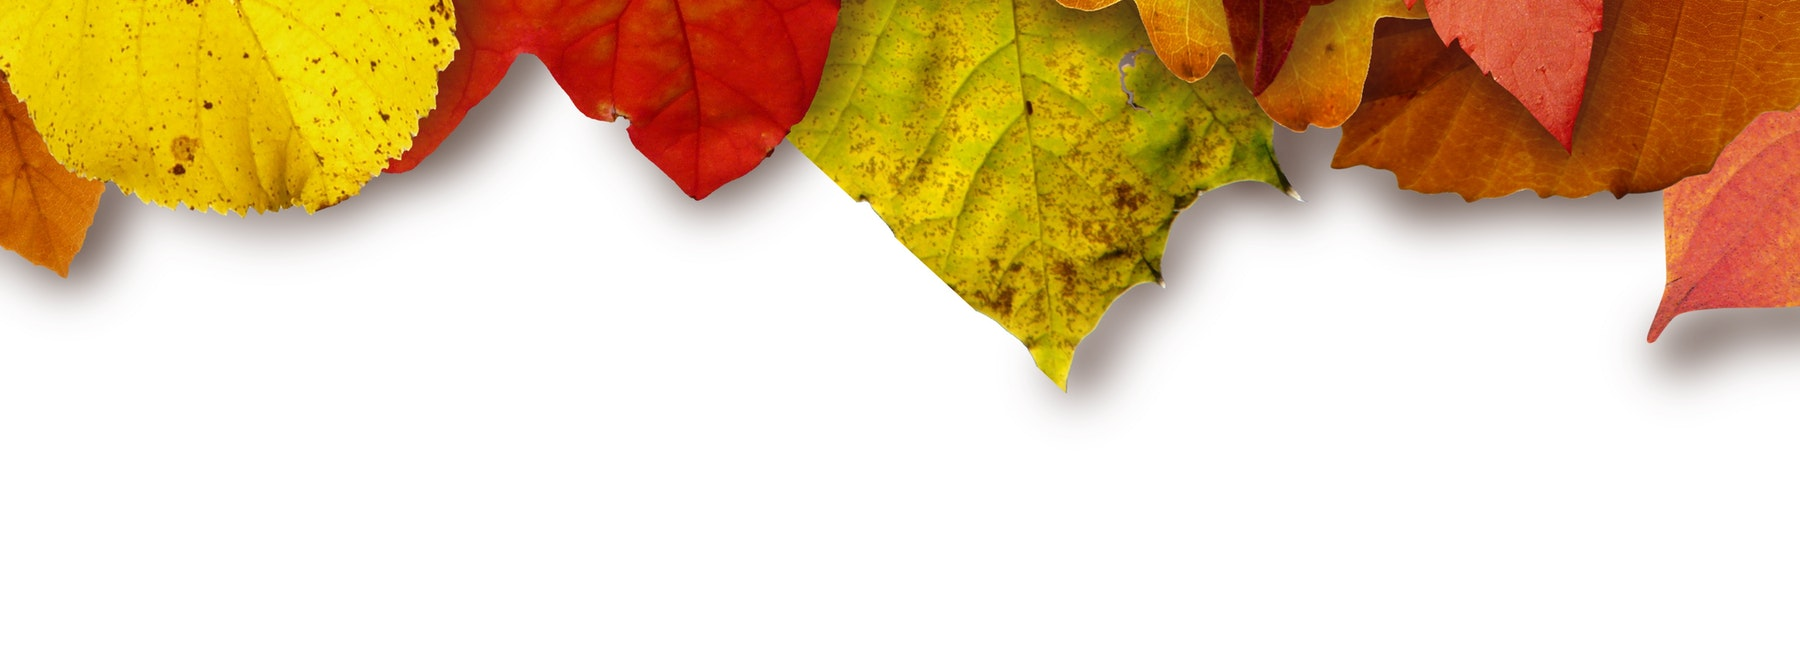 leaves on the ground in the autumn winter warmers